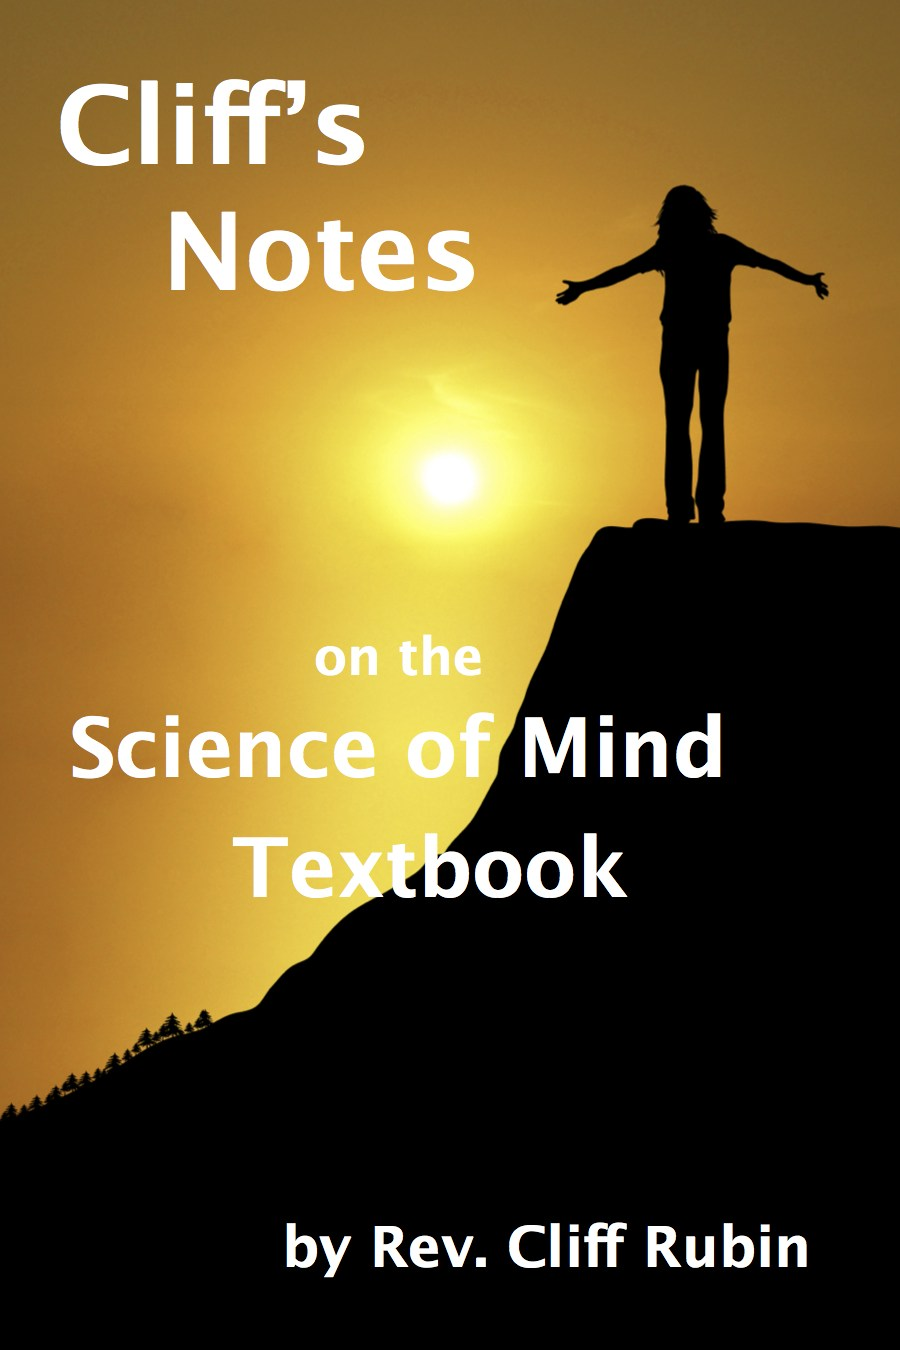 Cliff's Notes on the Science of Mind Textbook